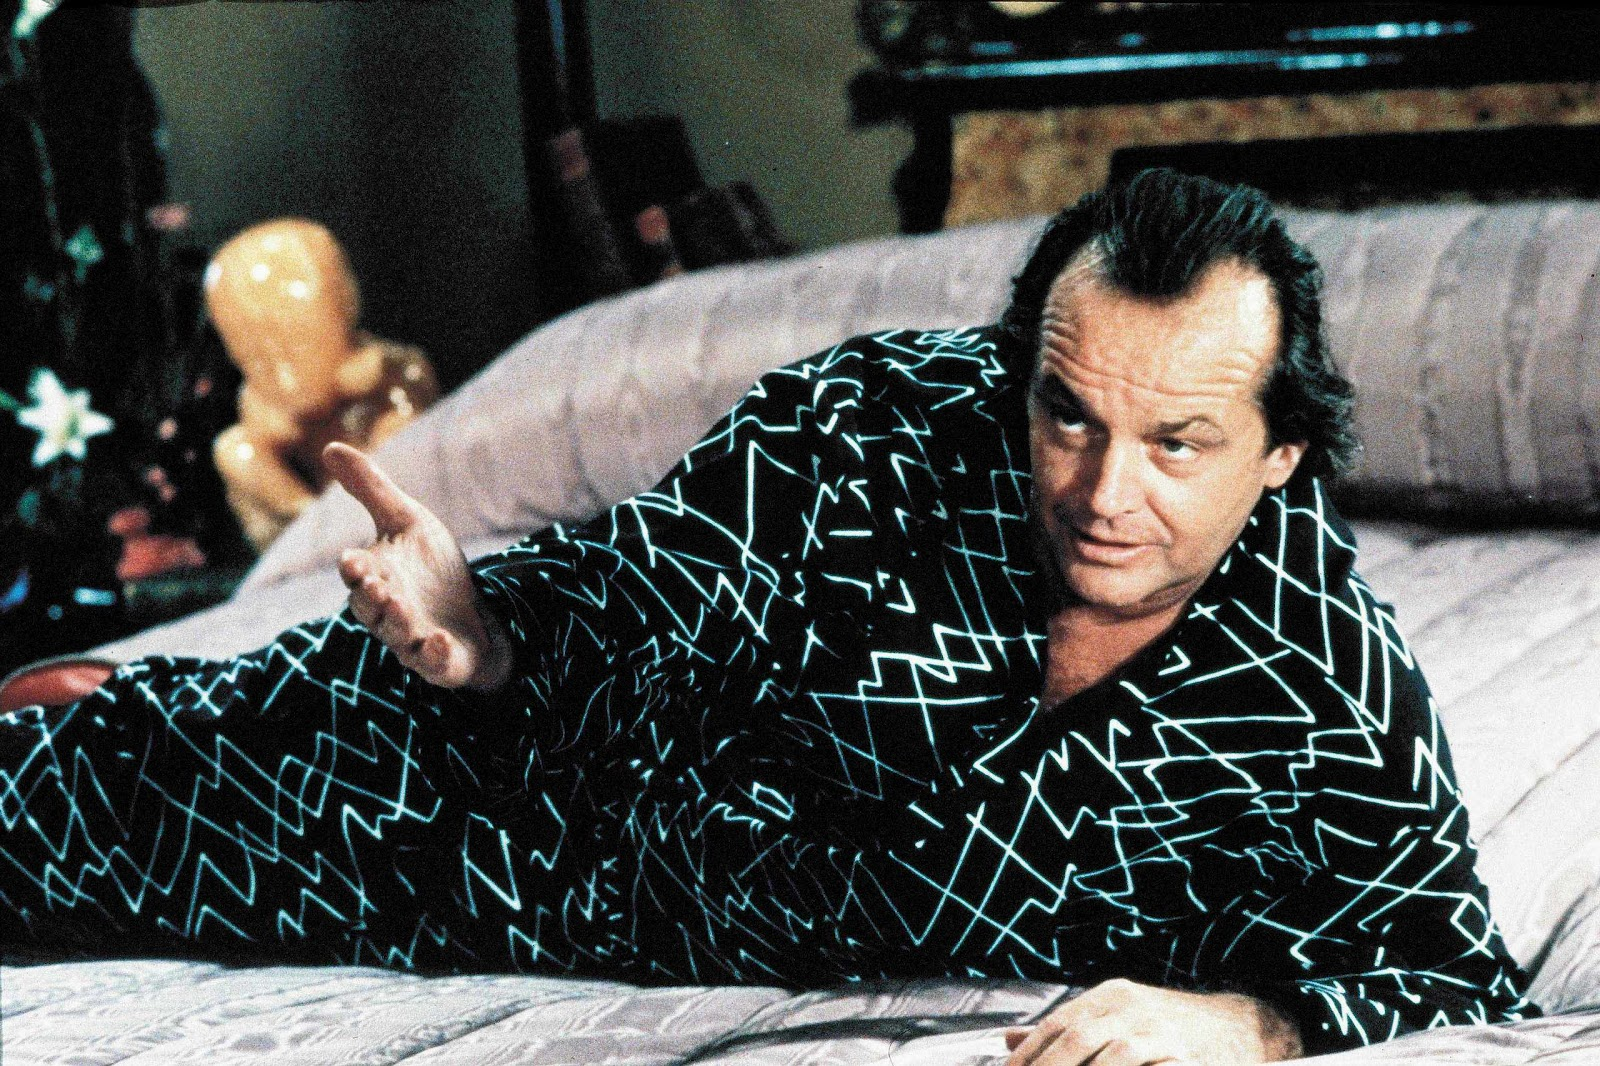 The Devil incarnate in the form of Daryl Van Horne (Jack Nicholson) in The Witches of Eastwick (1987)